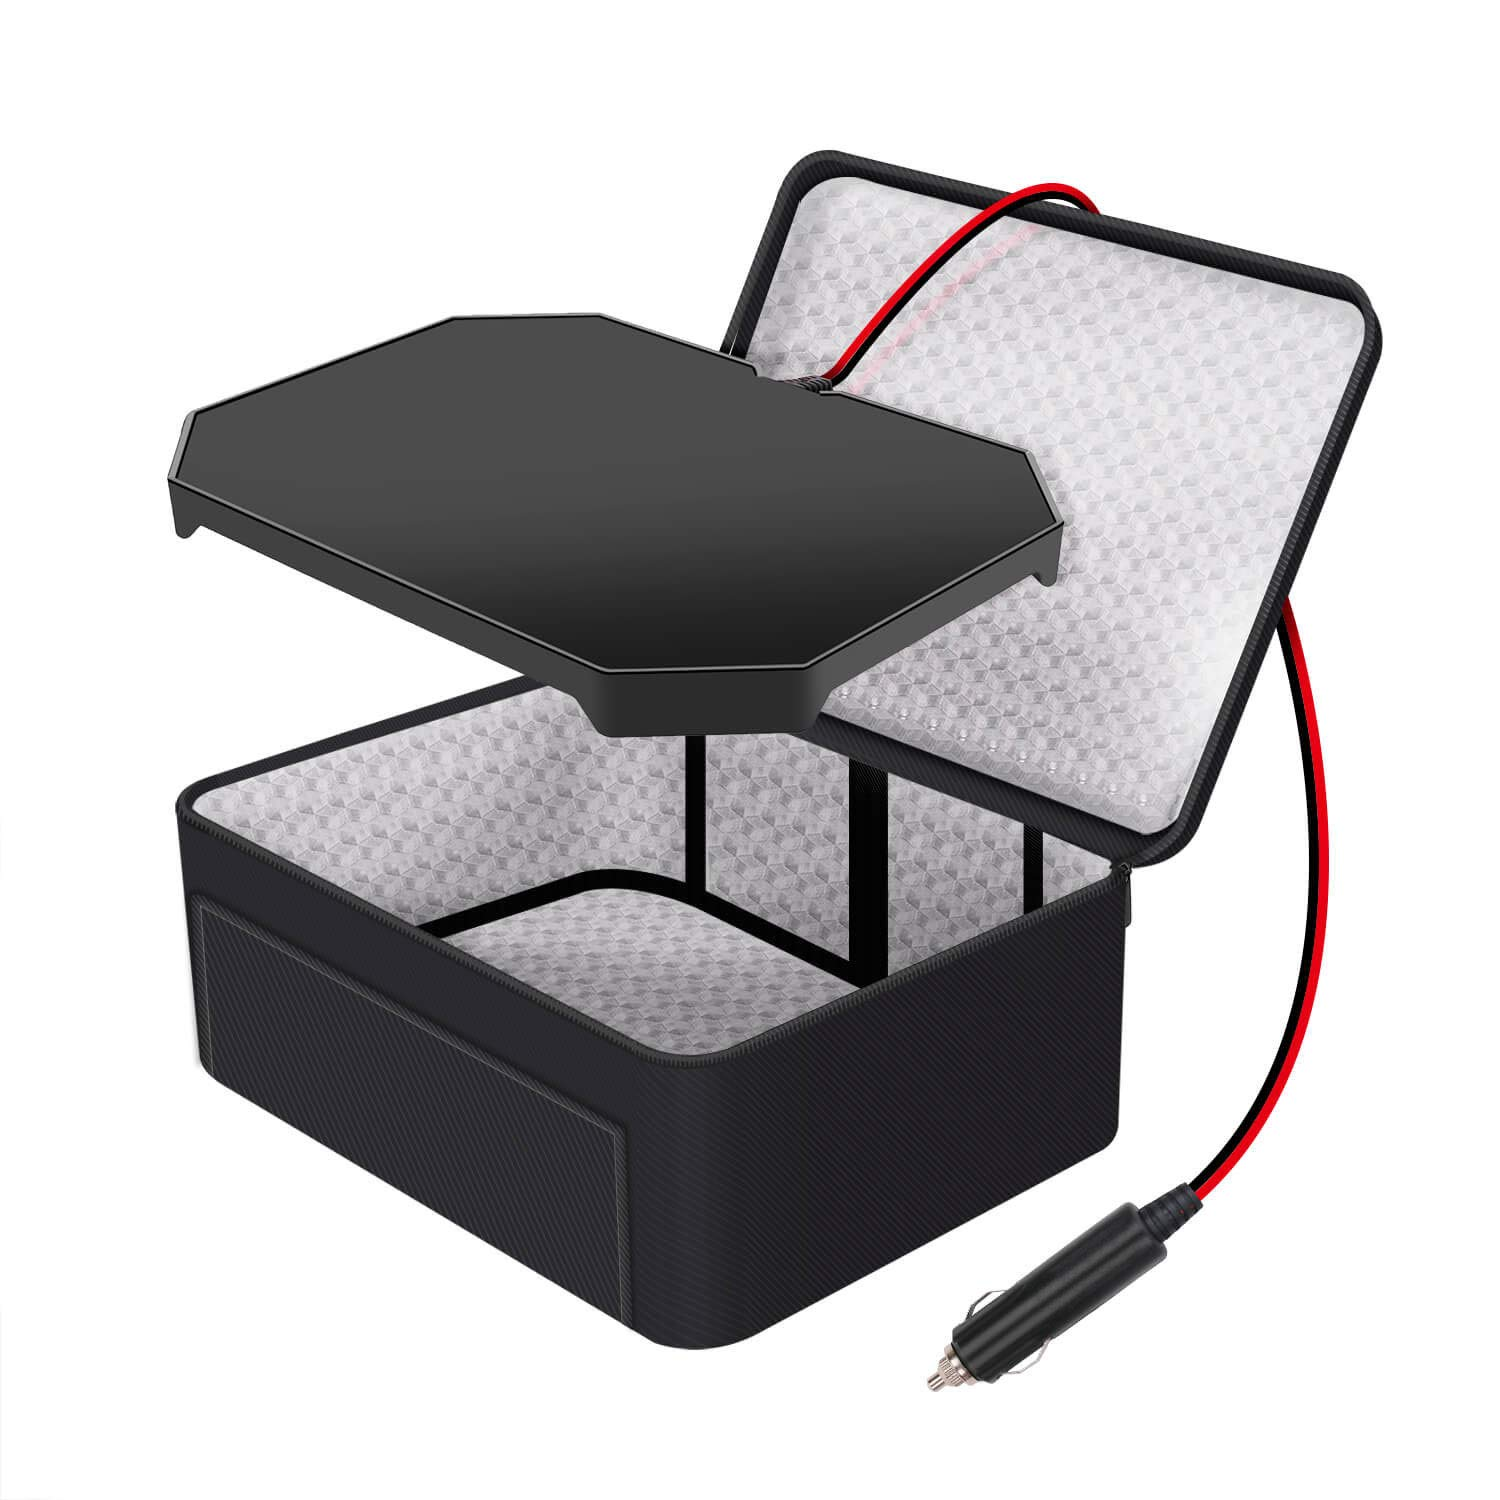 Aotto Personal Portable Reheating Cooking